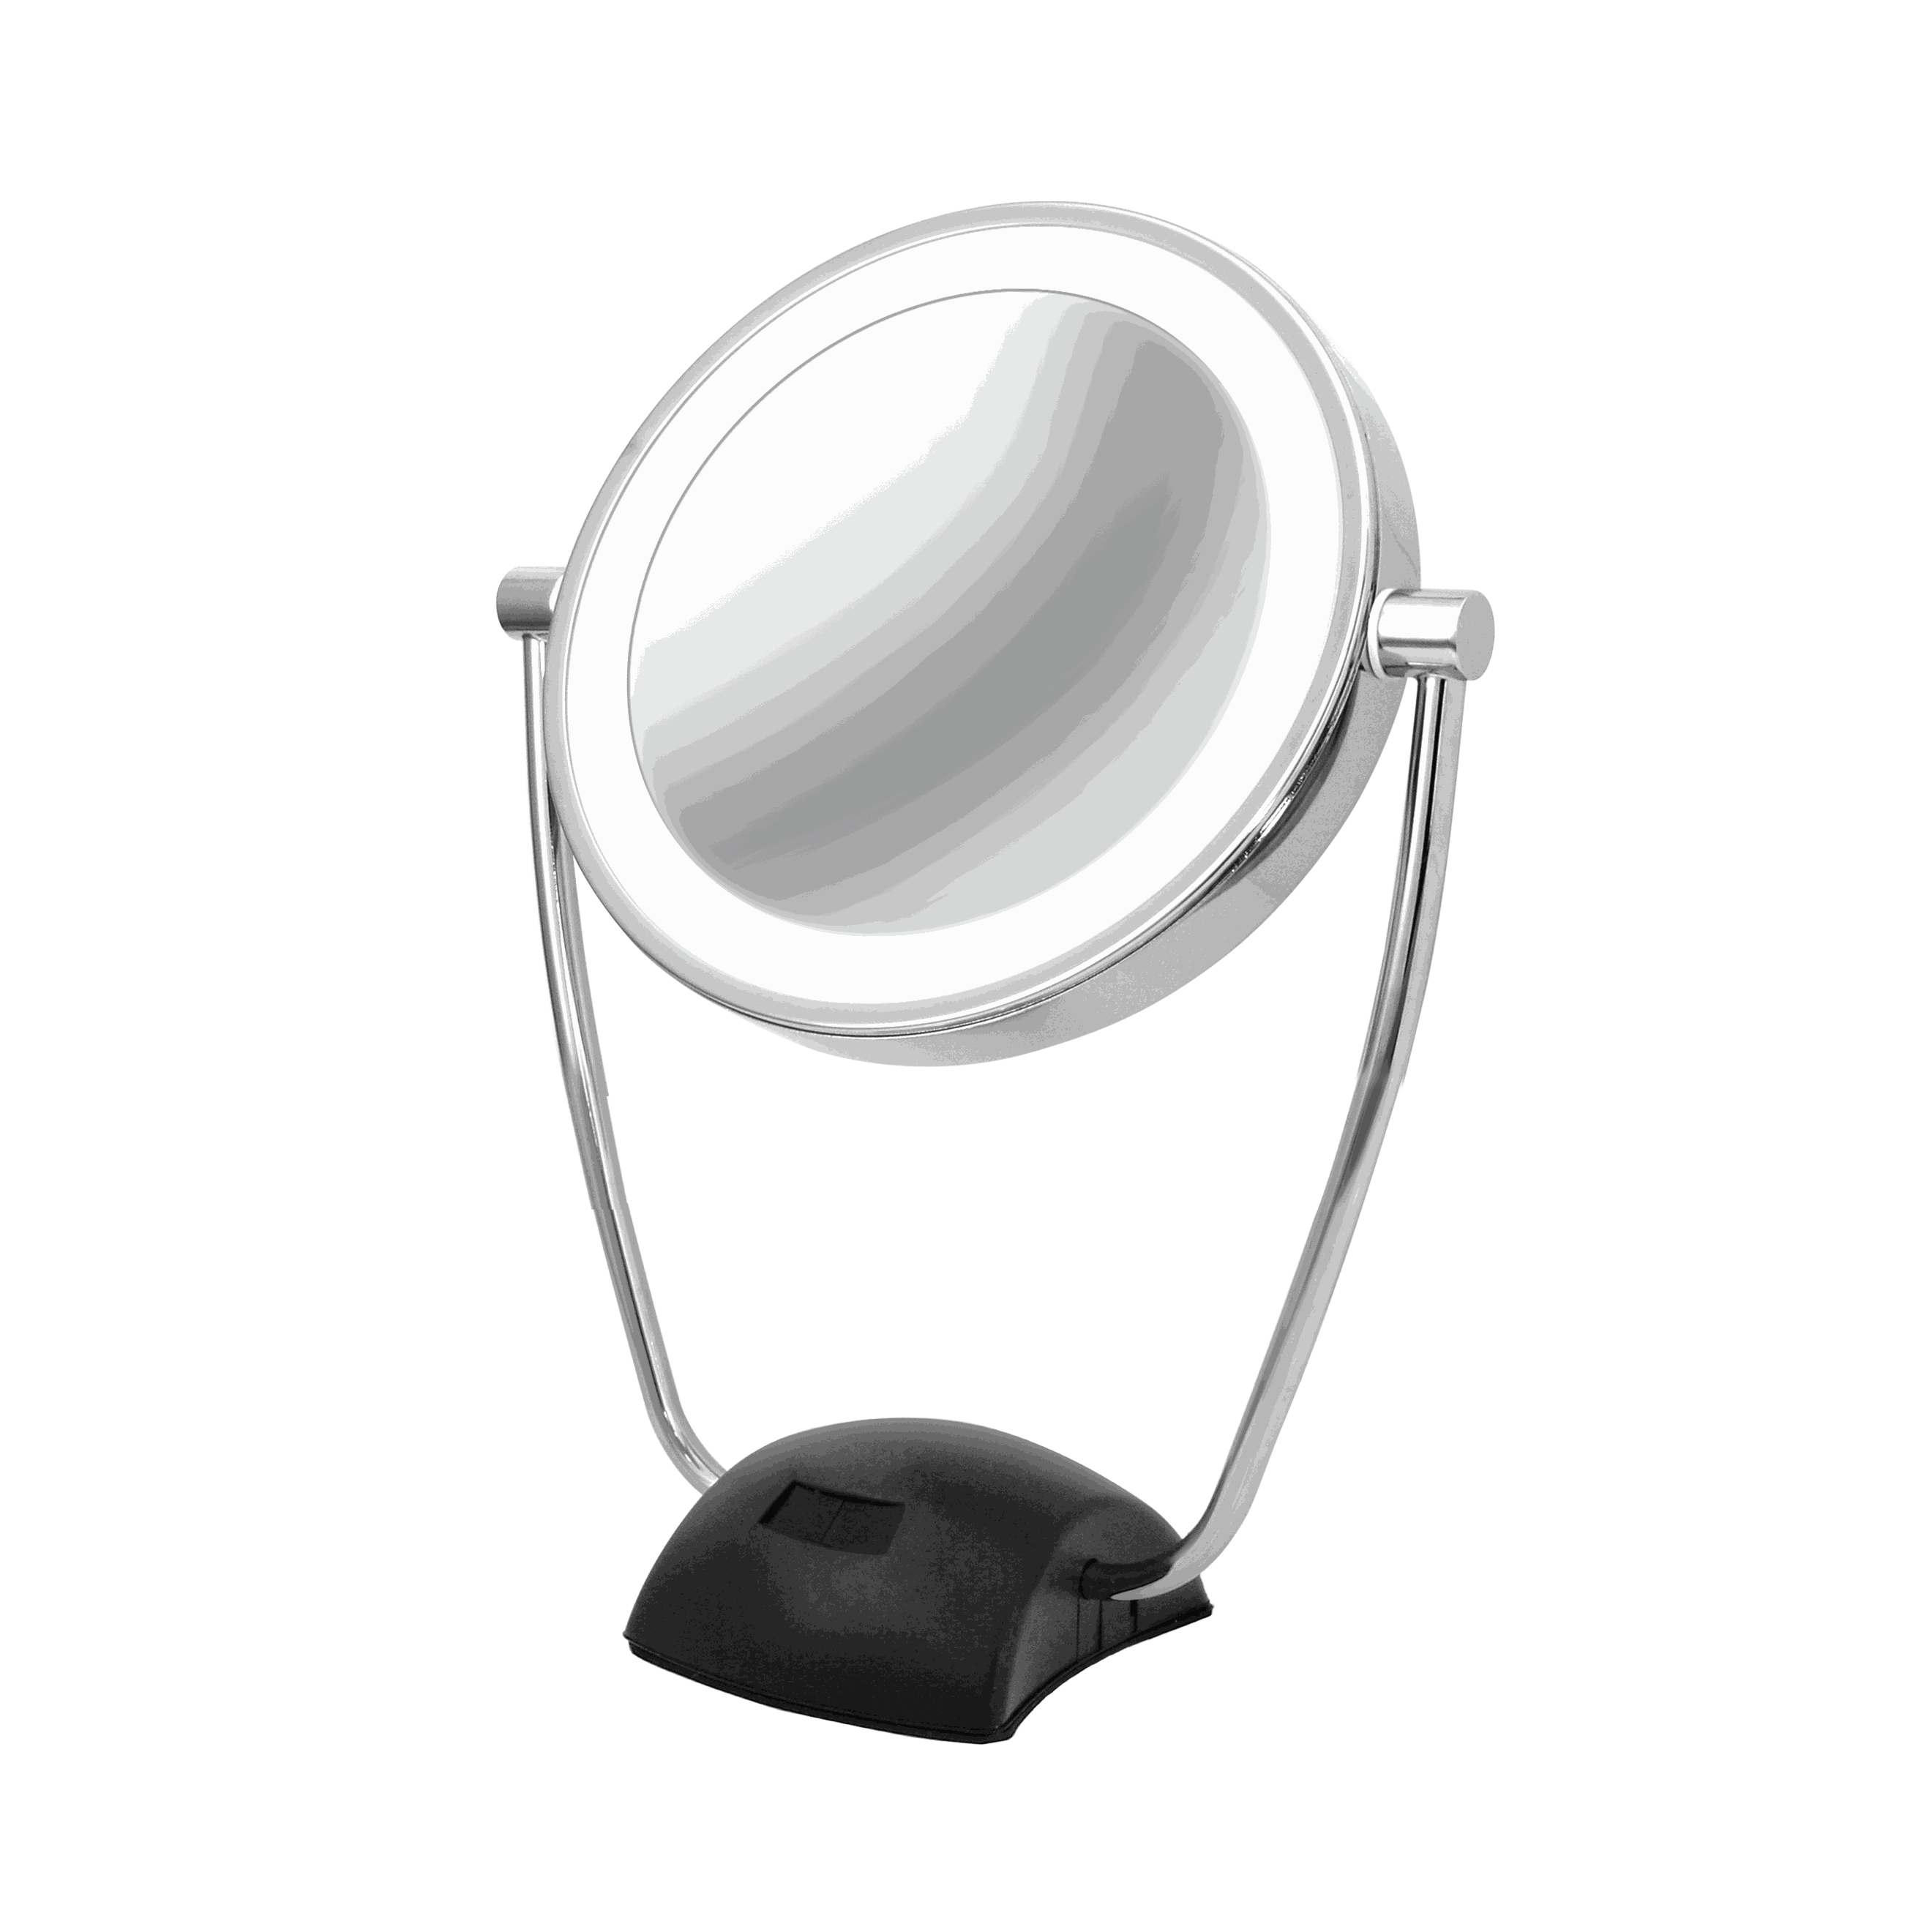 Magnifying mirror 1x/10x rechargeable with automatic lighting MI22.31